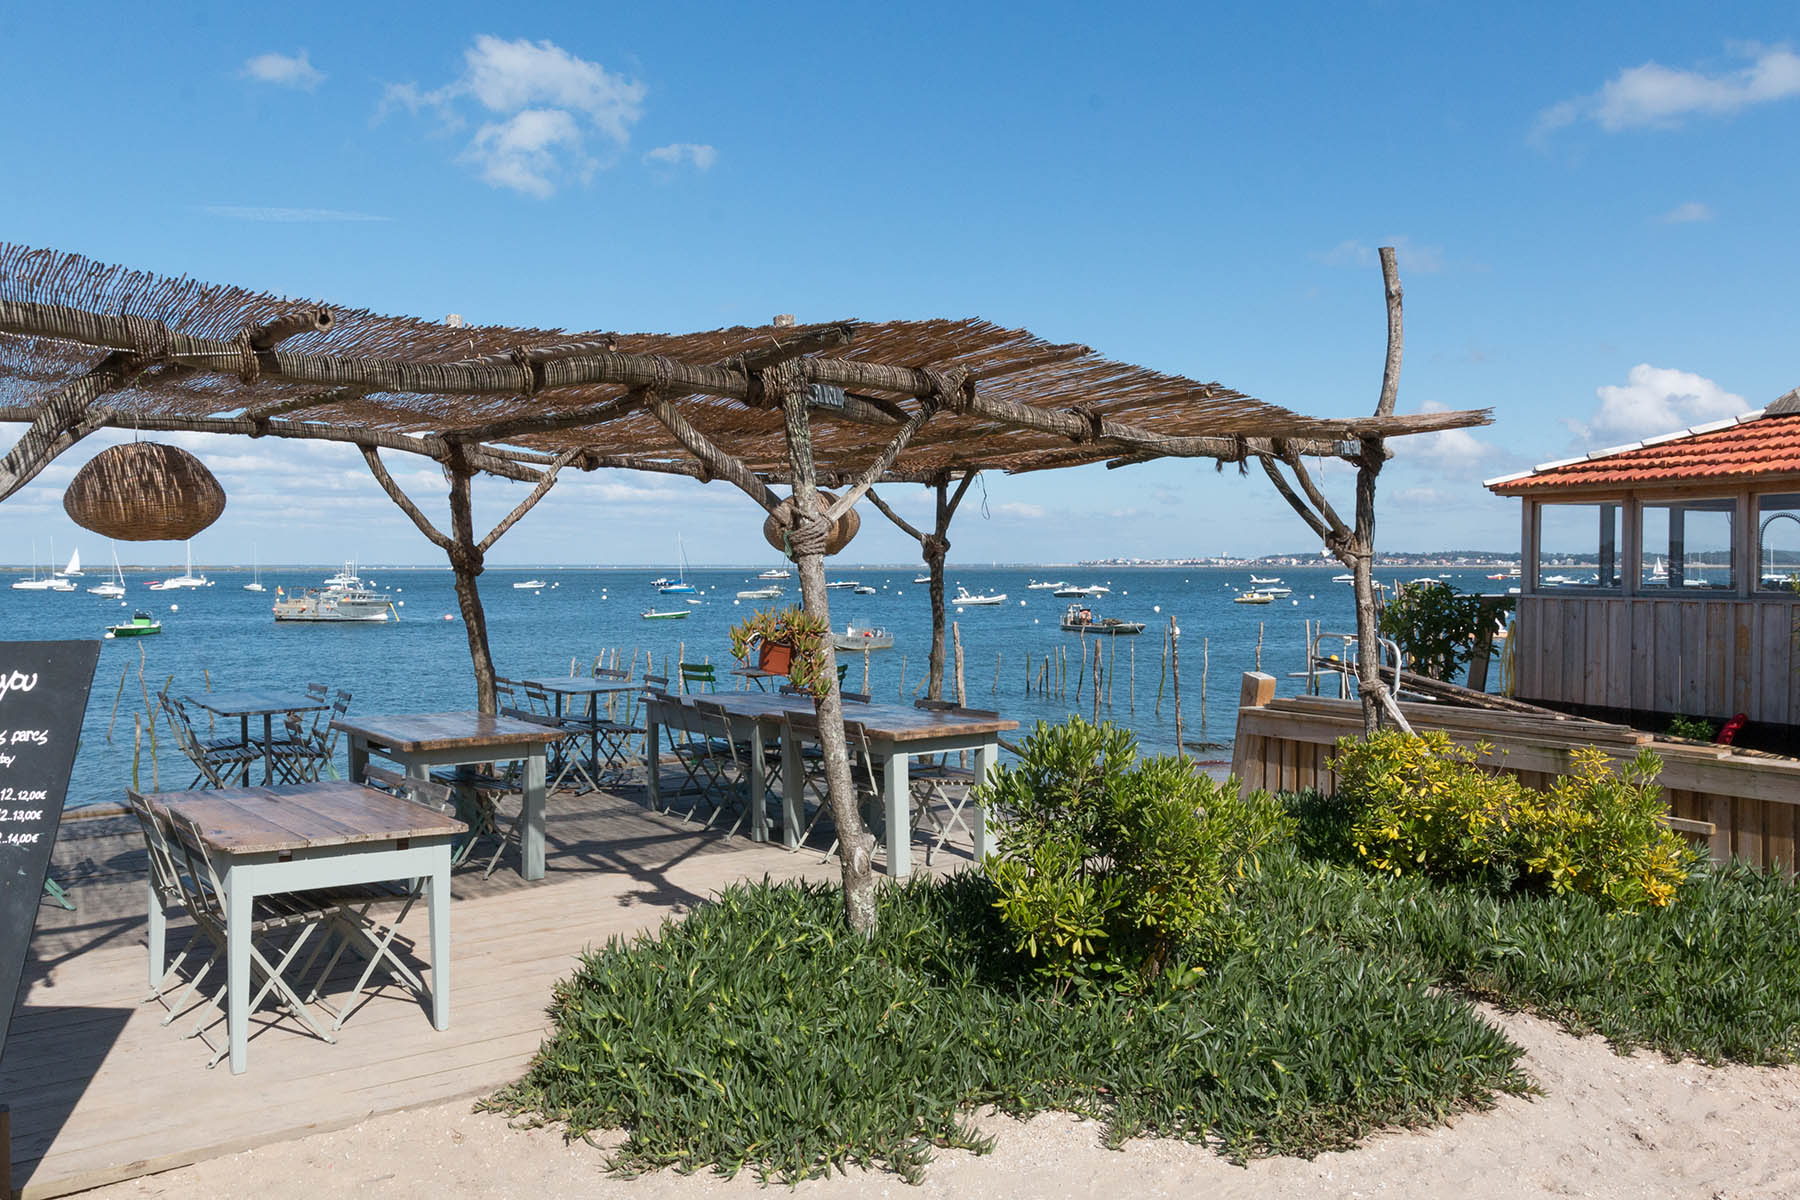 Plage de l 39 herbe au cap ferret localisation photos - Office du tourisme de lege cap ferret ...